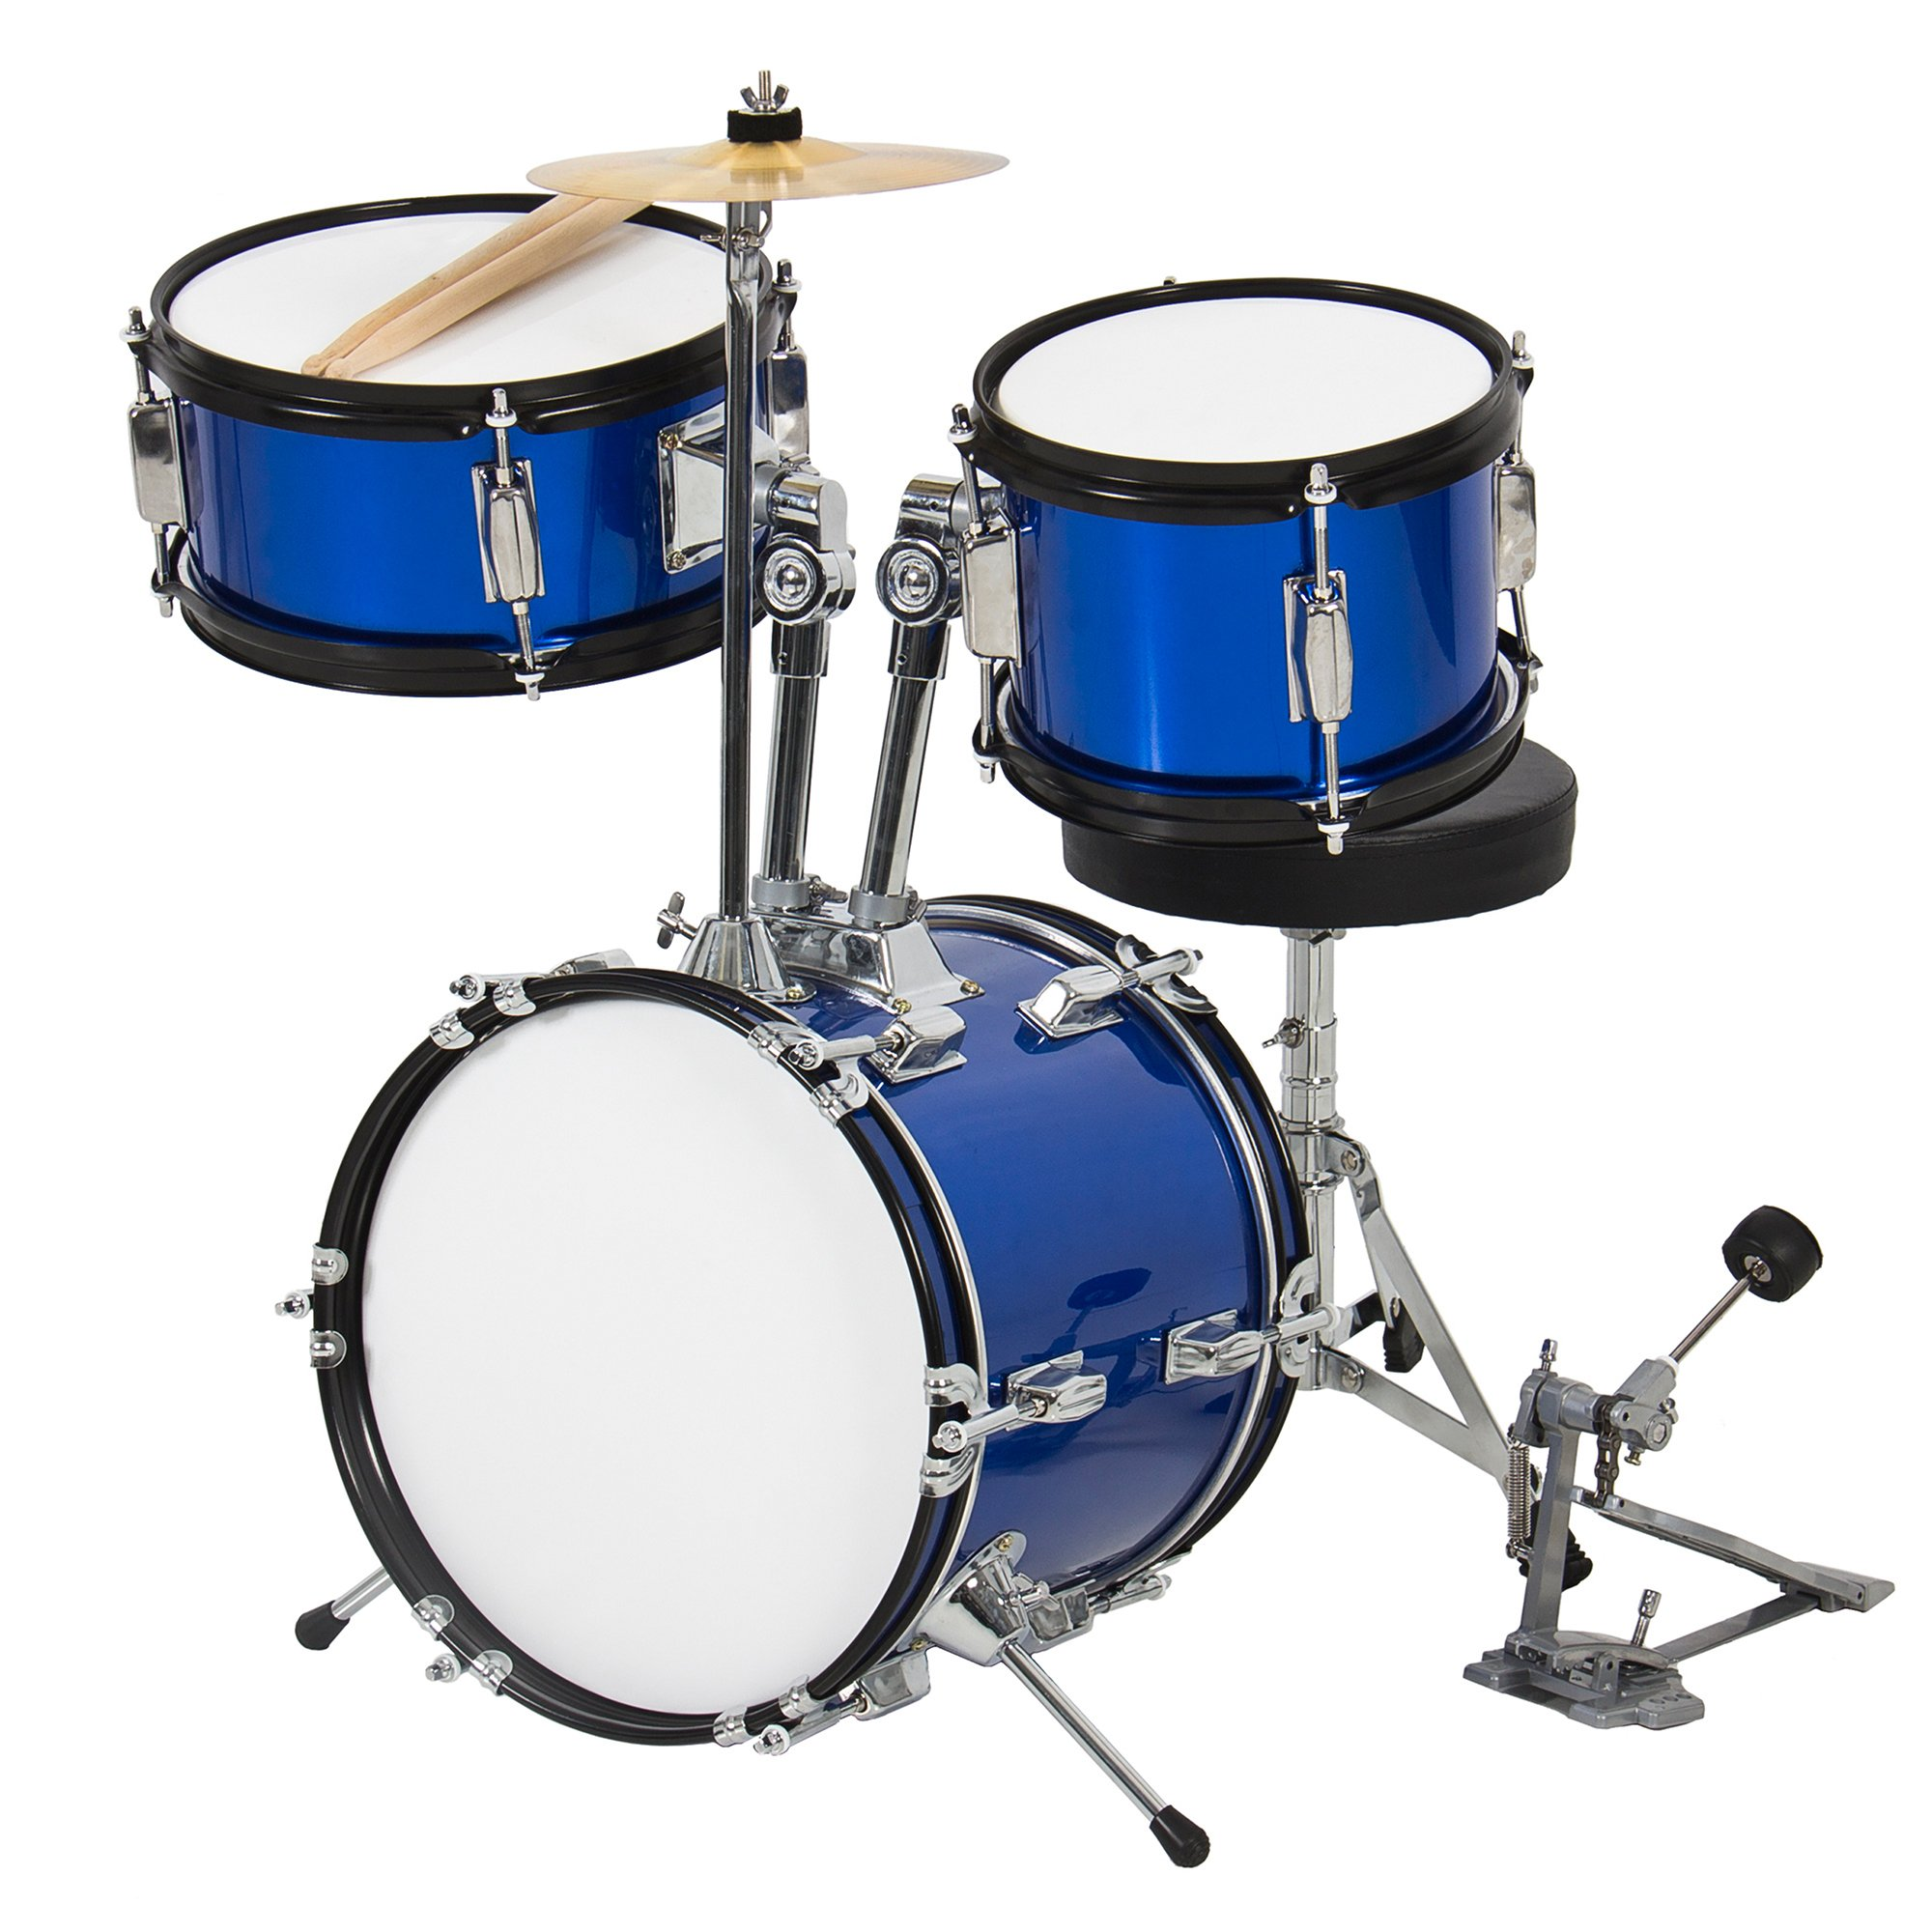 Best Choice Products 3-Piece Kids Beginner Drum Set w/ Sticks, Chair, and Drum Pedal -Blue